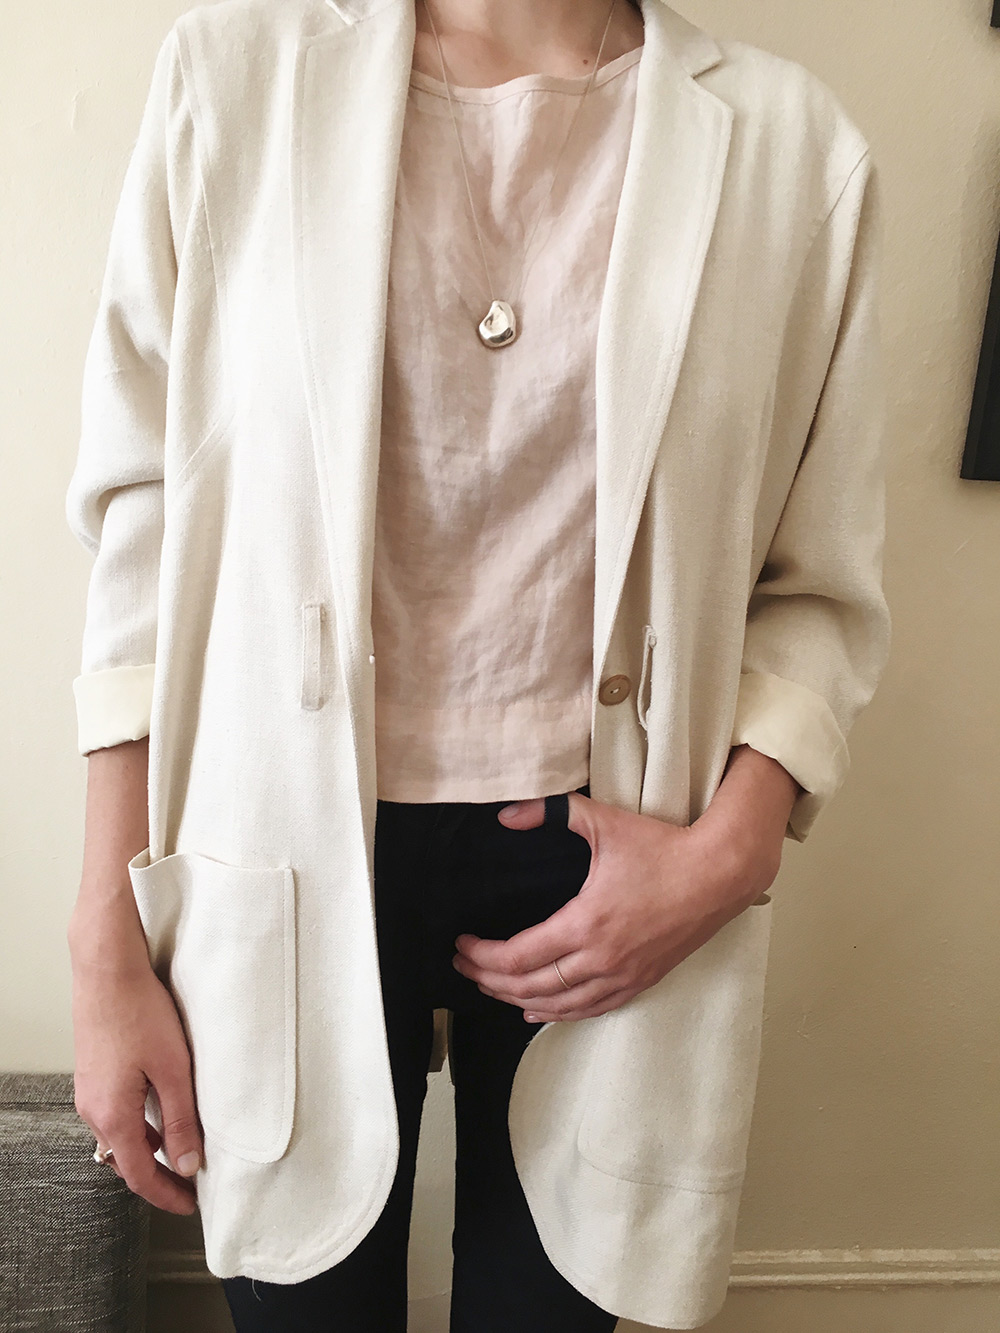 House Dress NY  Slit Back Blazer,  Ilana Kohn  Kate Crop , Industry Standard  Margot Highrise , FARIS  Nug Necklace